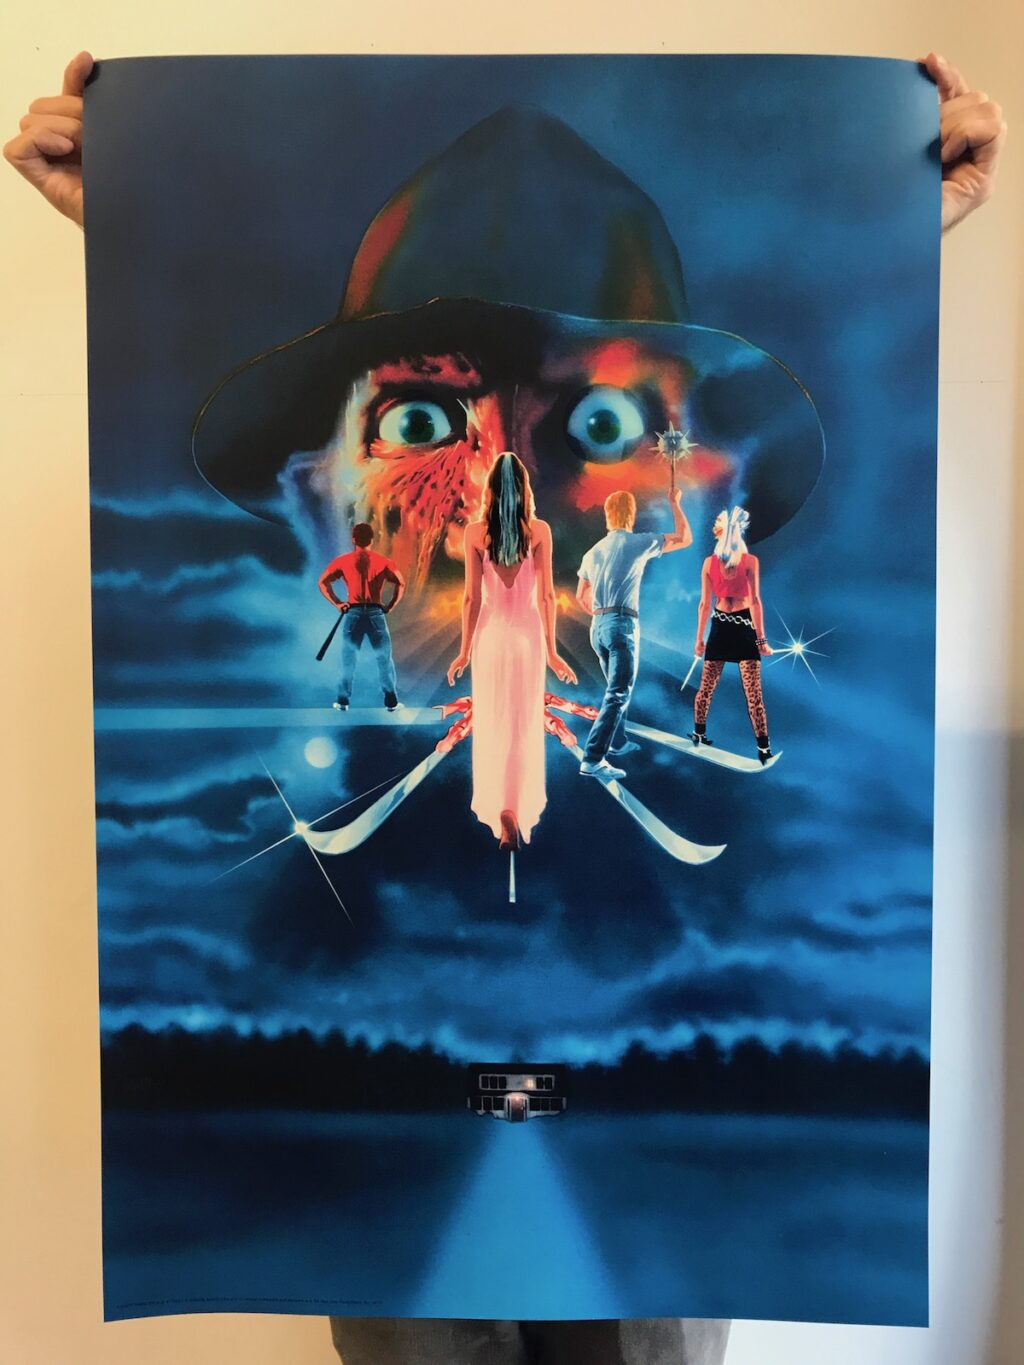 bottlenecknoes3 2 1024x1365 - Exclusive: Bottleneck Gallery Reveals NYCC Art Prints Including Friday the 13th and Nightmare on Elm Street 3